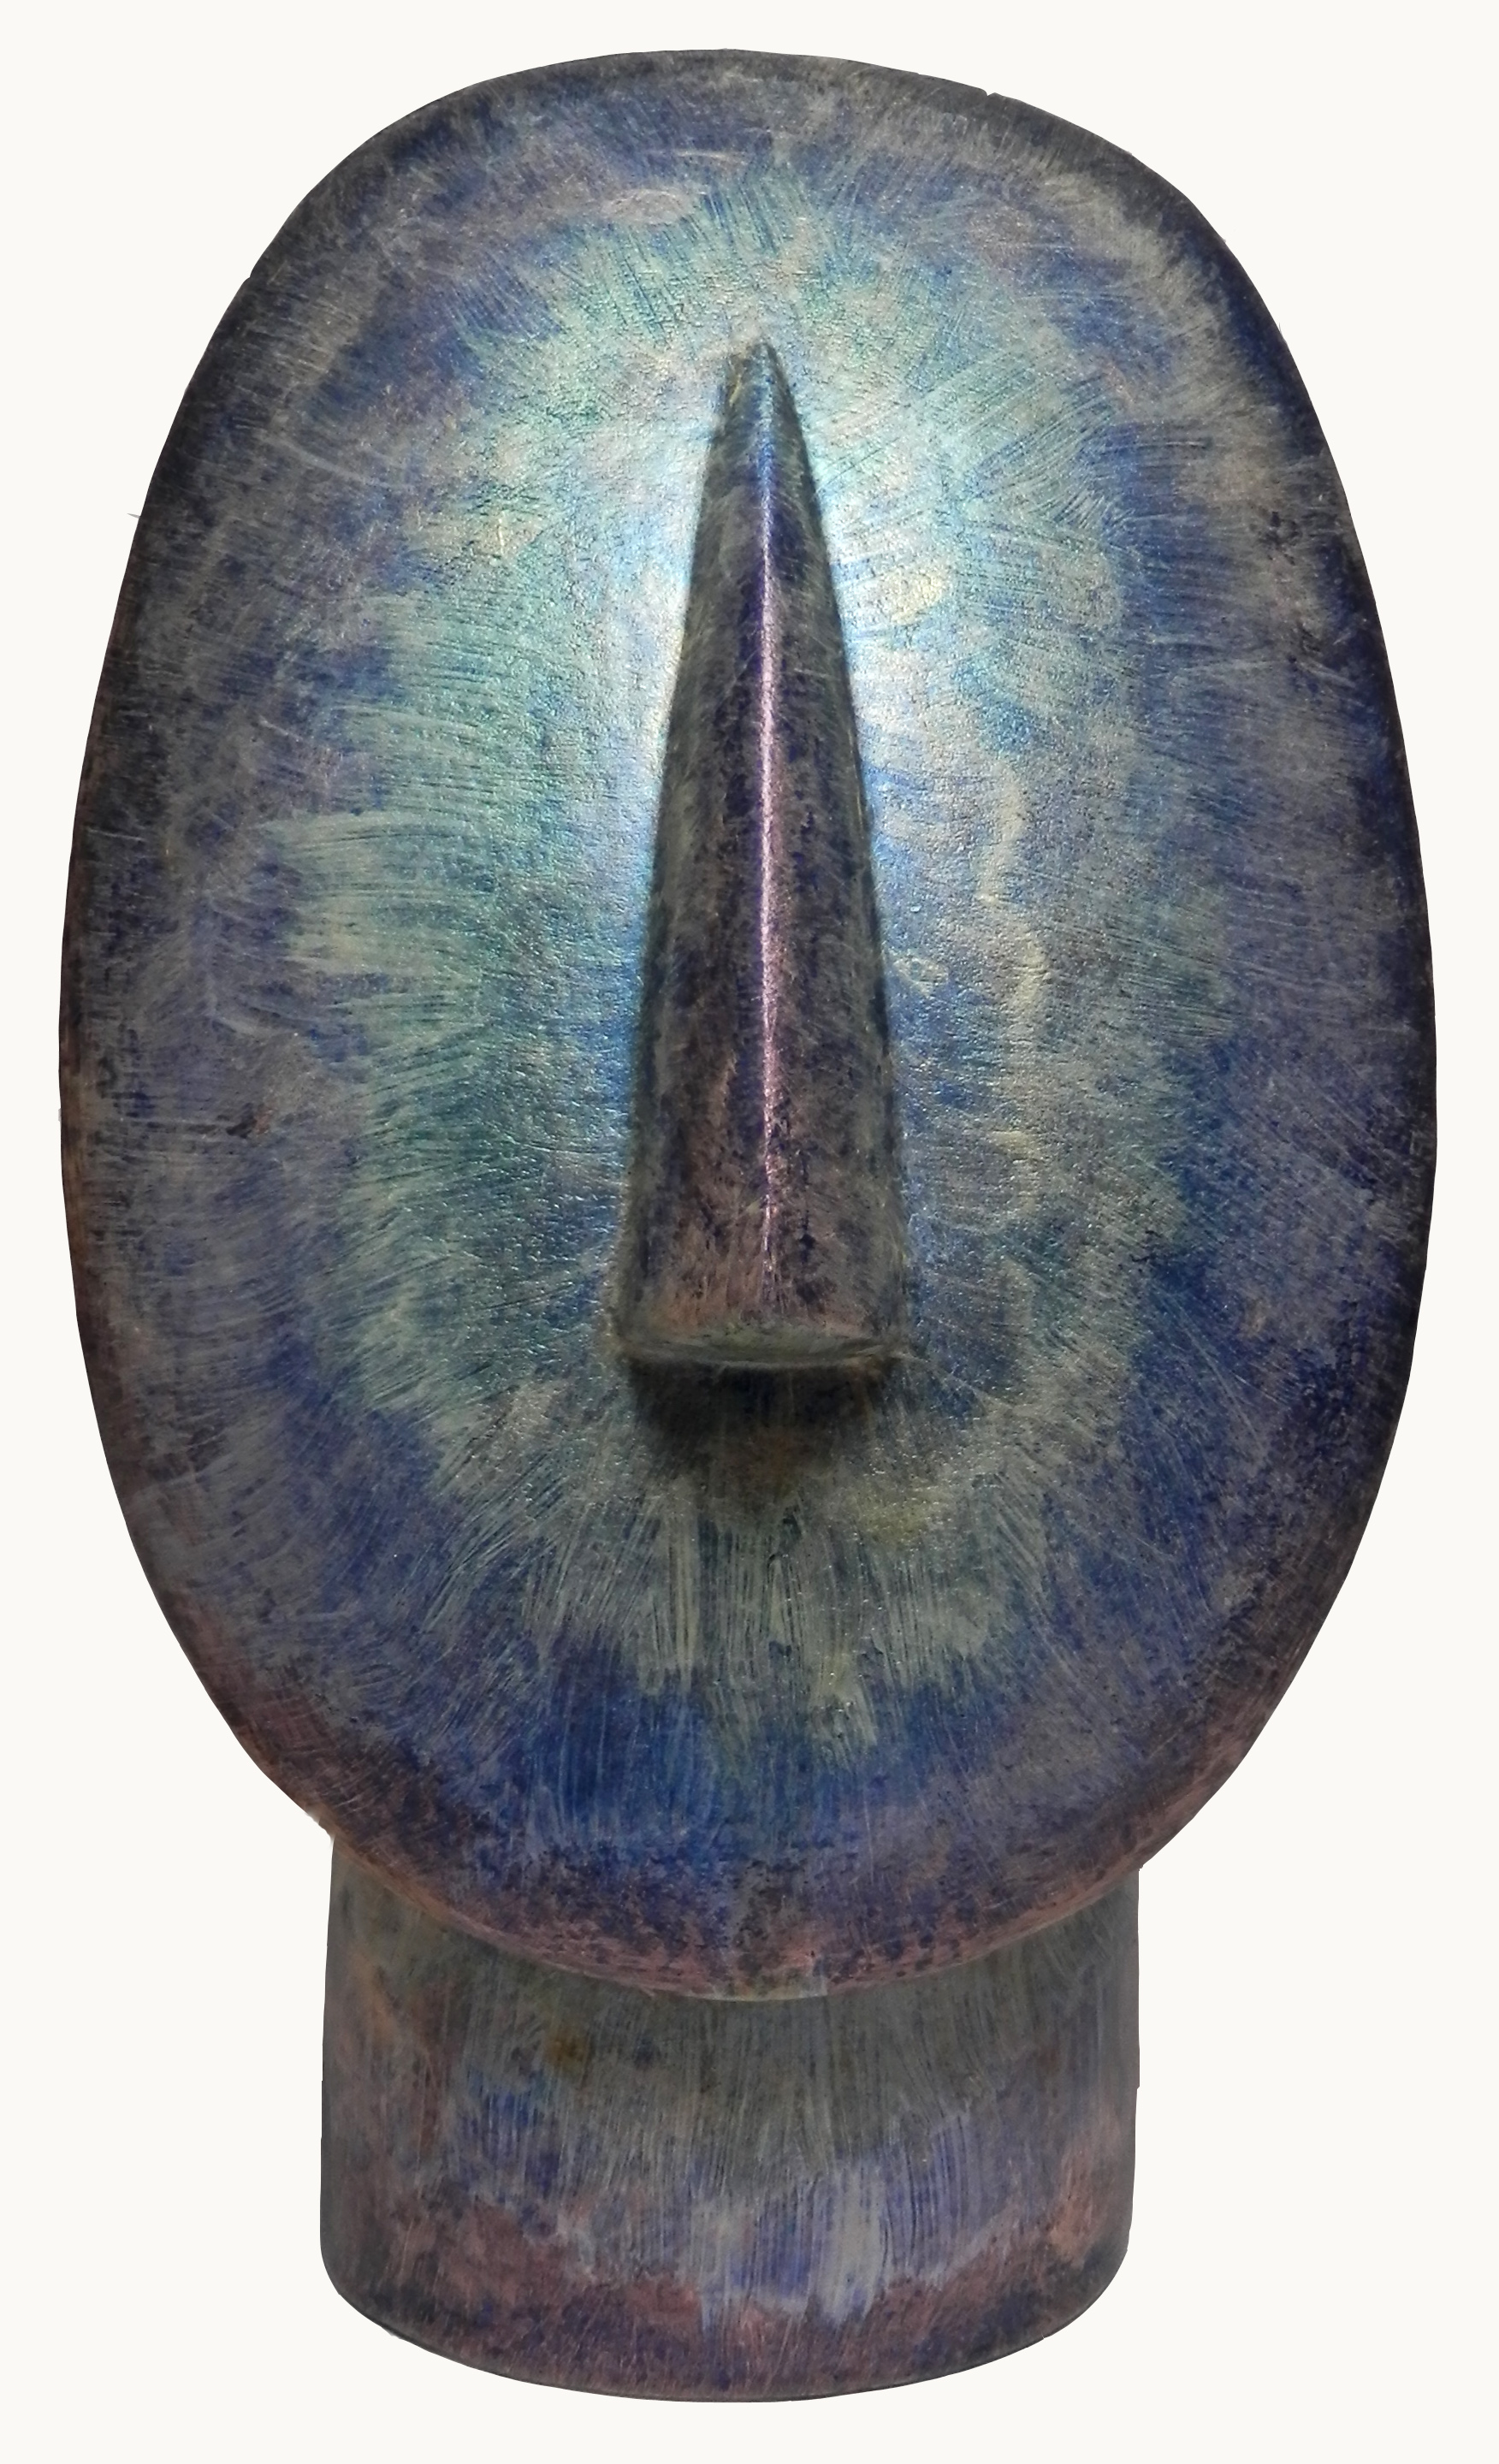 Oval Cycladic Head metallic rainbow.